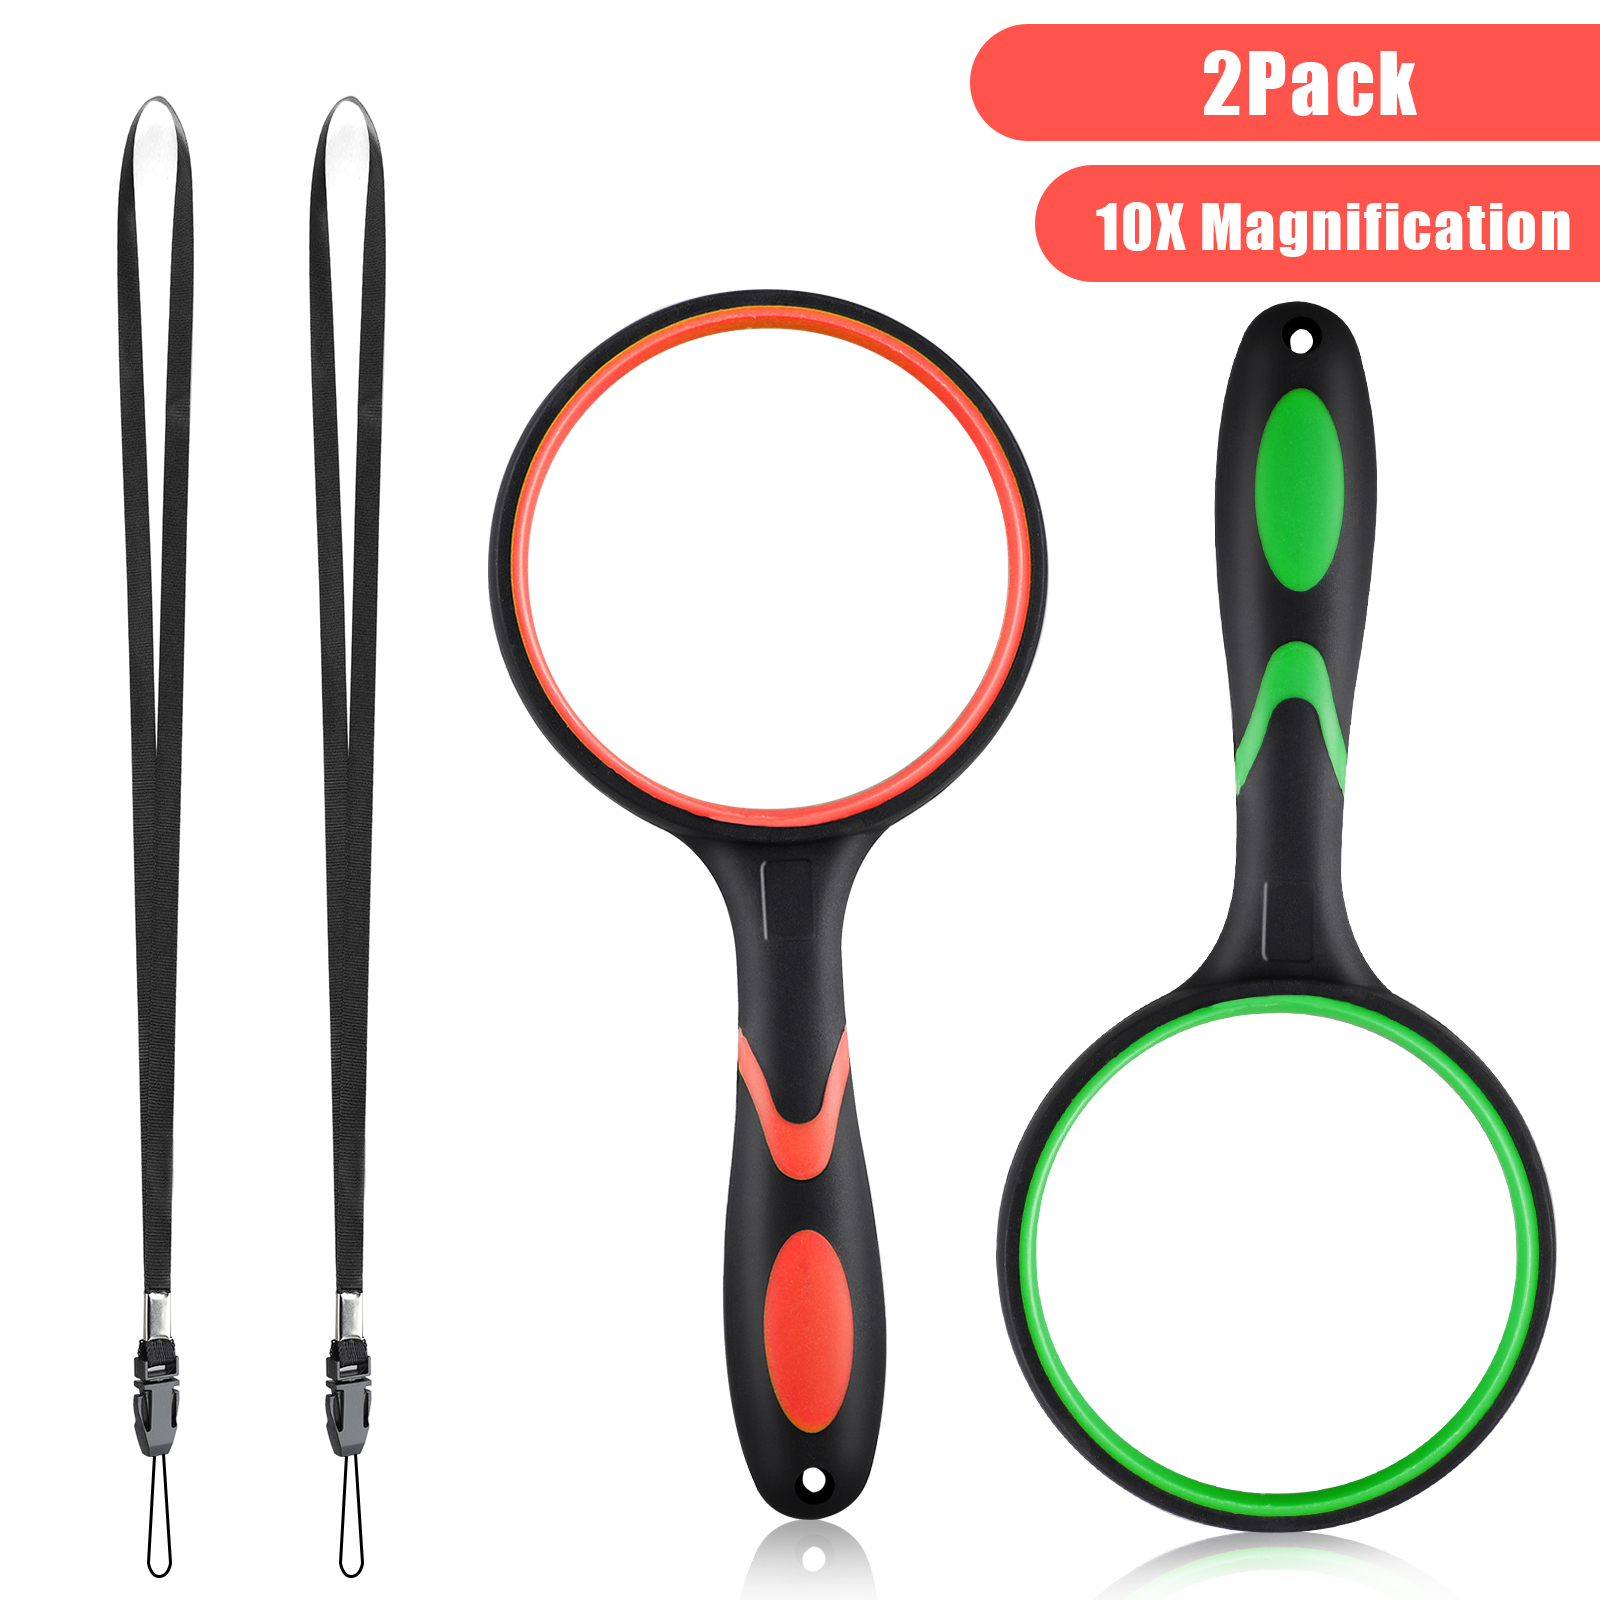 2pcs Magnifying Glass Handheld Reading Magnifier 75mm